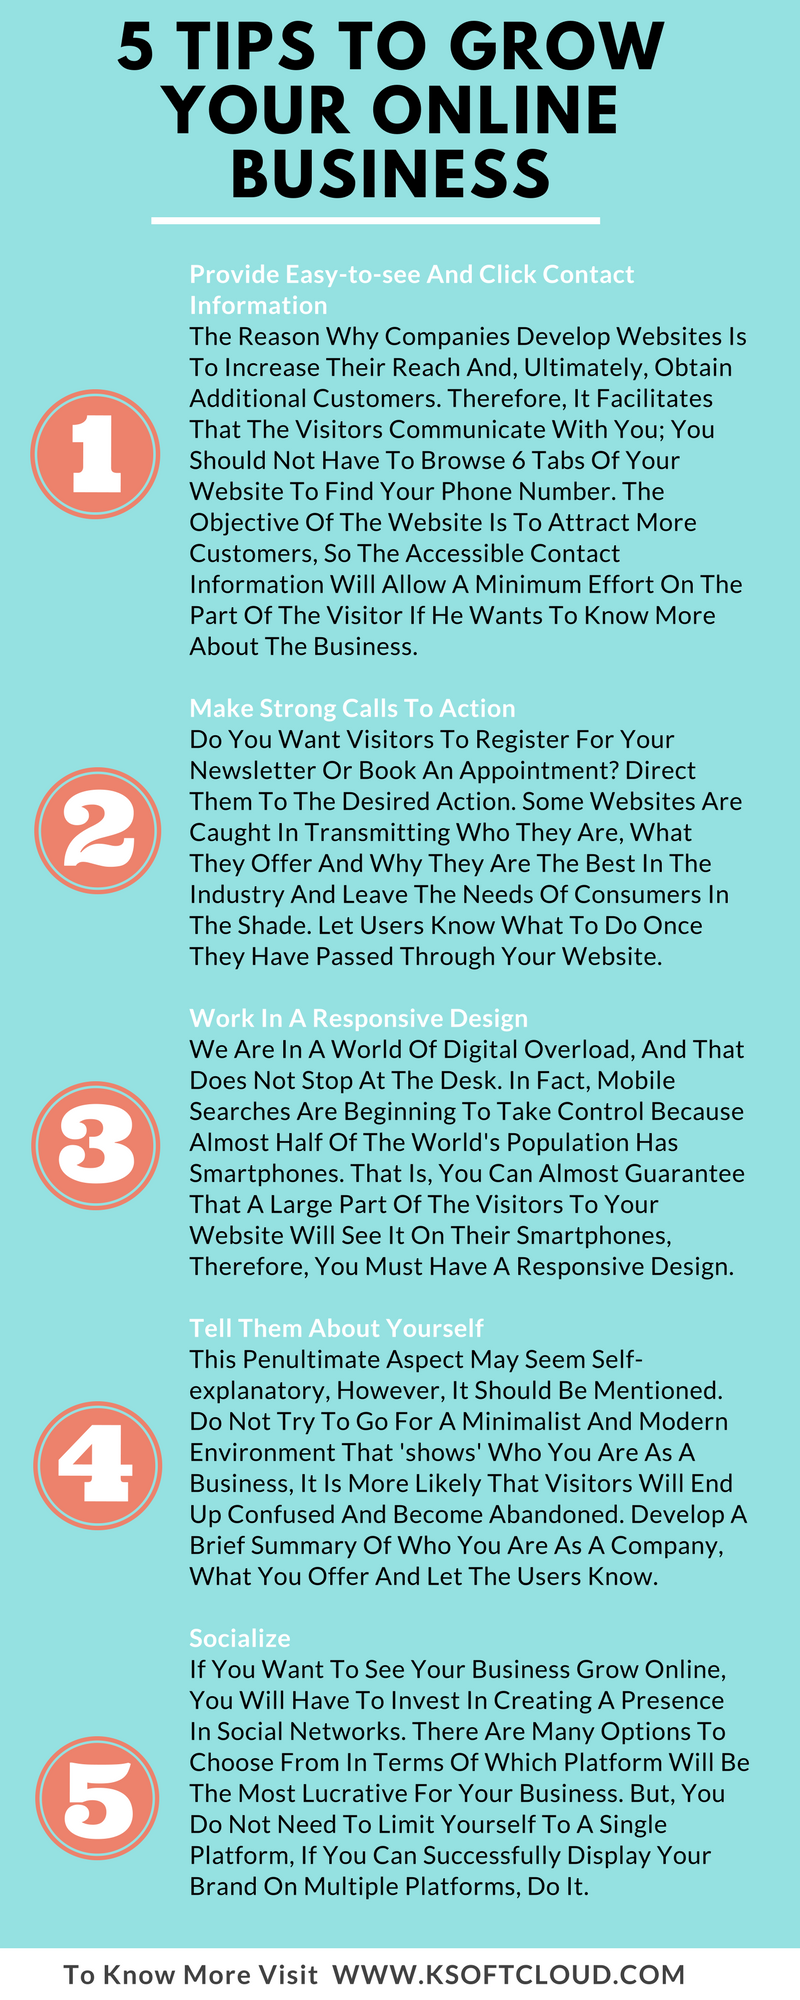 Businessonline businesshow to grow your online businessonline businessonline marketinghow to grow your online business fasthow to grow your business onlinehow to grow your network marketing business onlinehow solutioingenieria